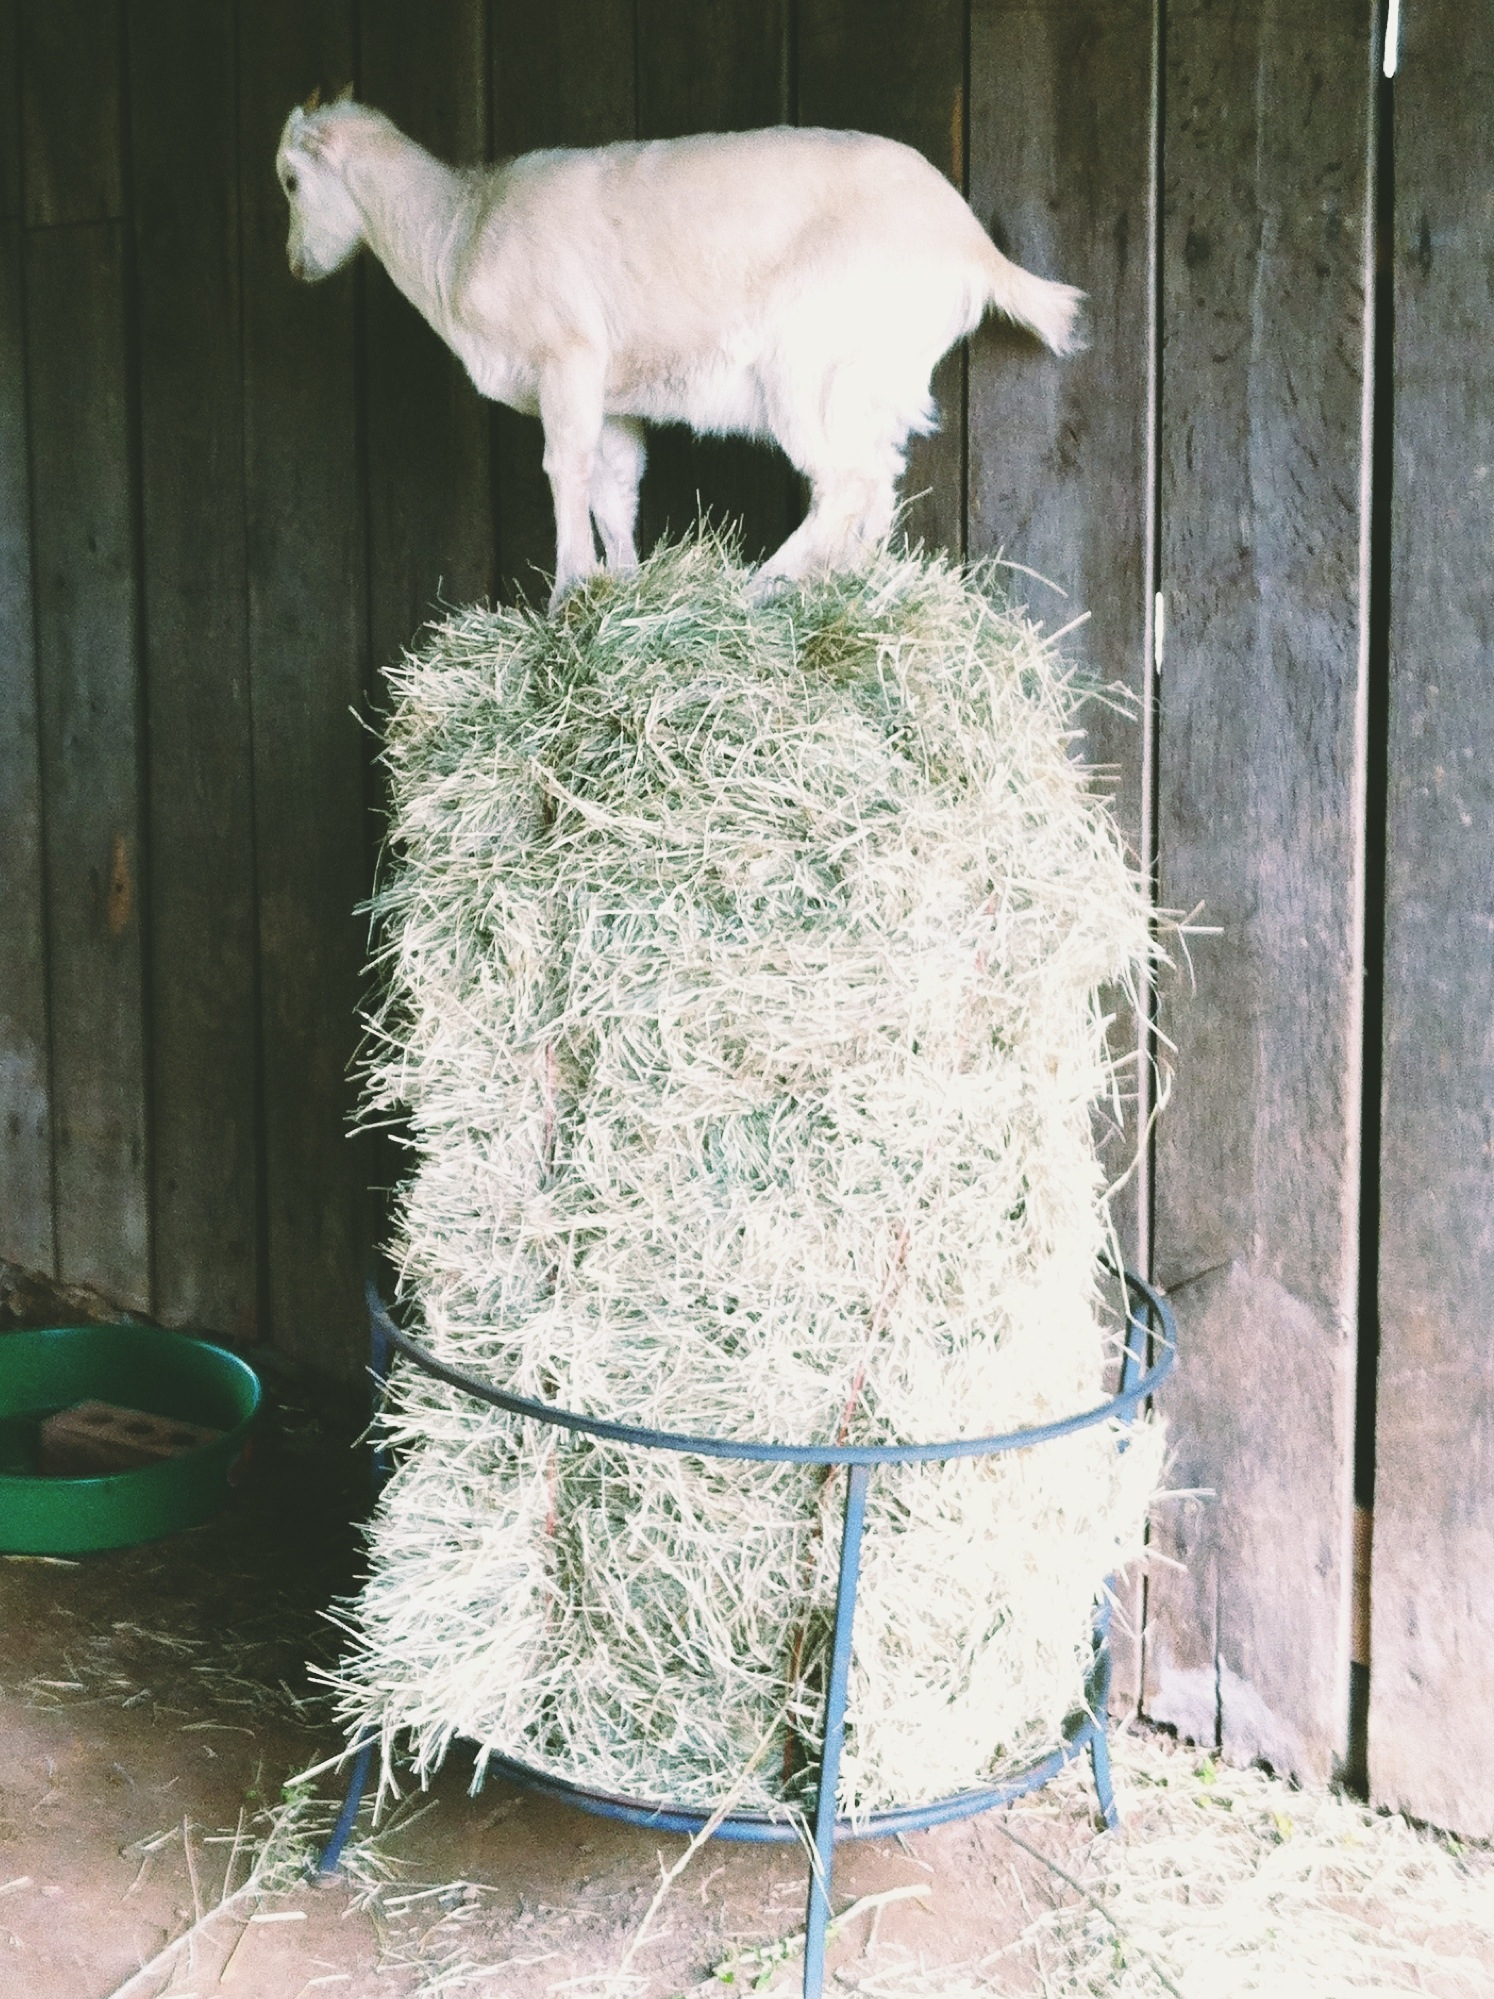 Chiminea fire pit base turned hay bale and goat perch holder.